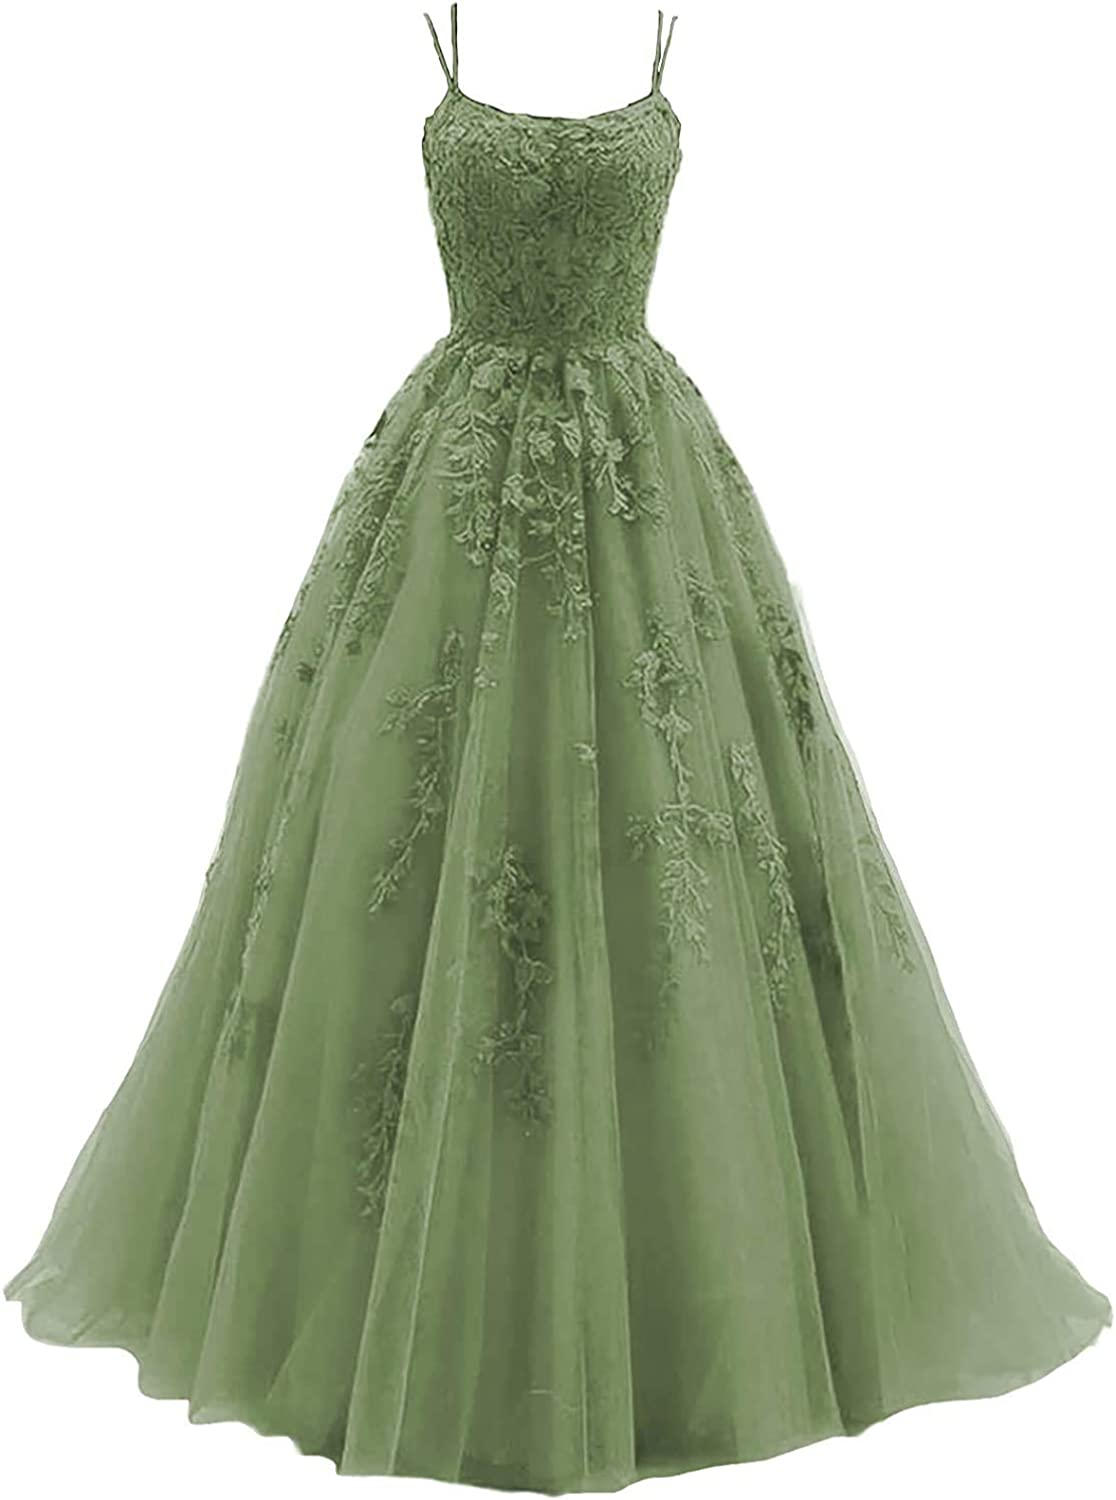 Lace Appliques NEW before selling ☆ Bridesmaid Dresses Excellent Long Straps Tul 2021 Spaghetti